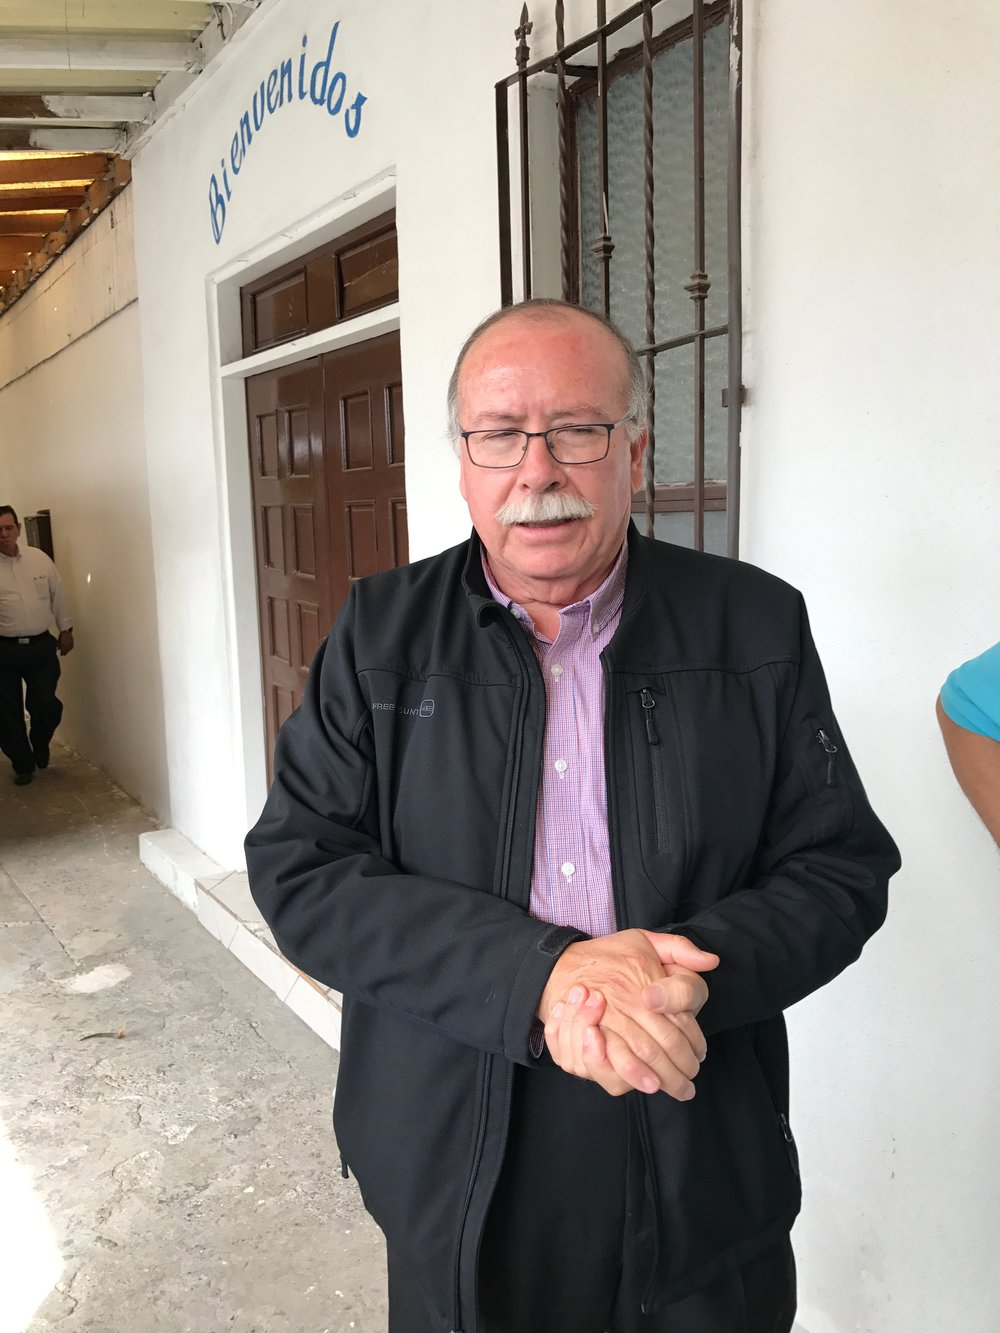 Antonio Ulloa Cruz, regional vice-president of the Methodist Men of Mexico offers his support to the situation as well as his greetings and thanks to the United Methodist Church's support.